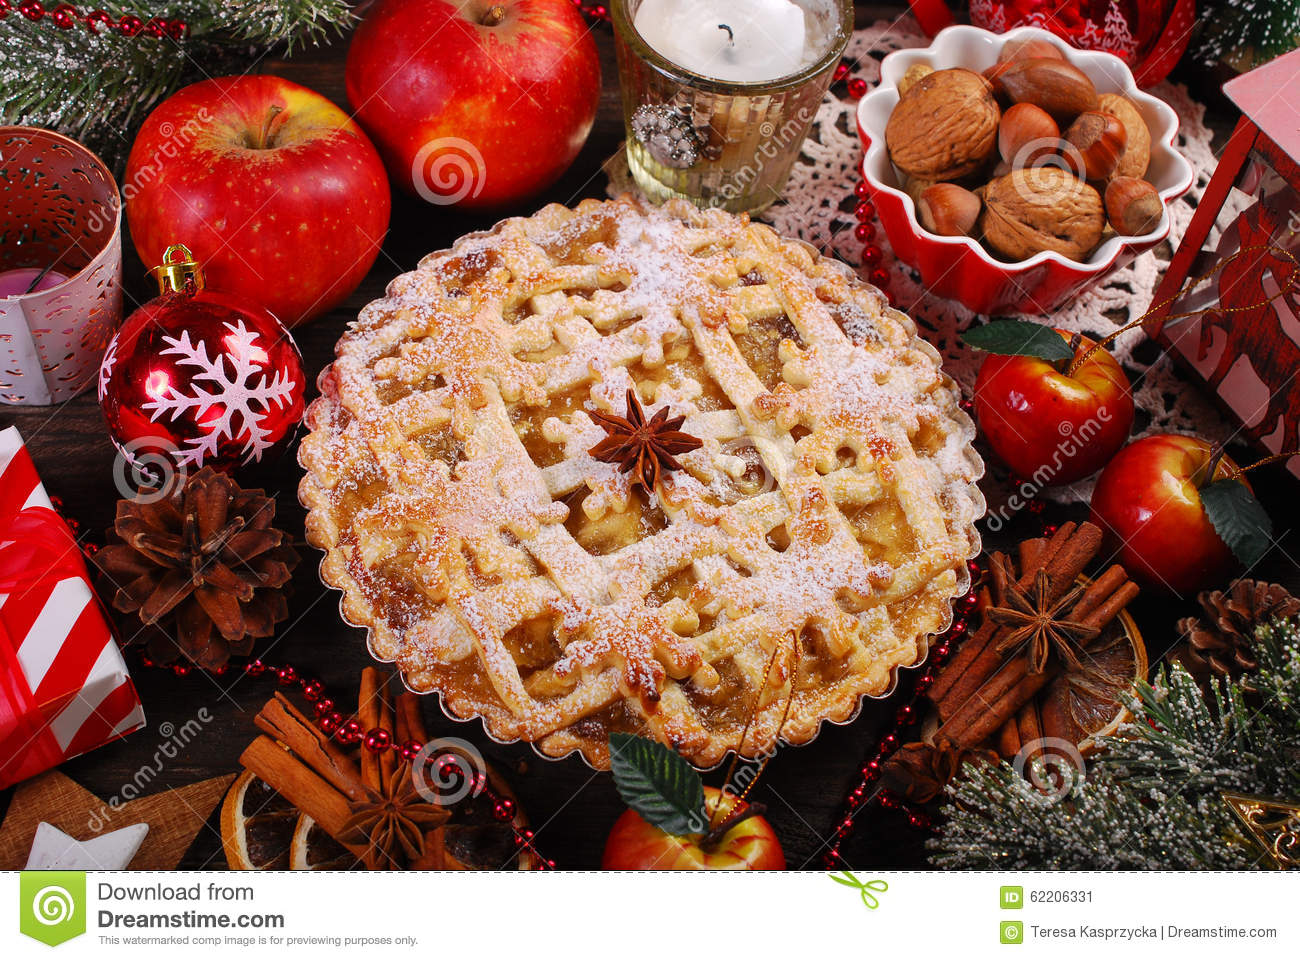 Apple Pie For Christmas Stock Photo Image 62206331